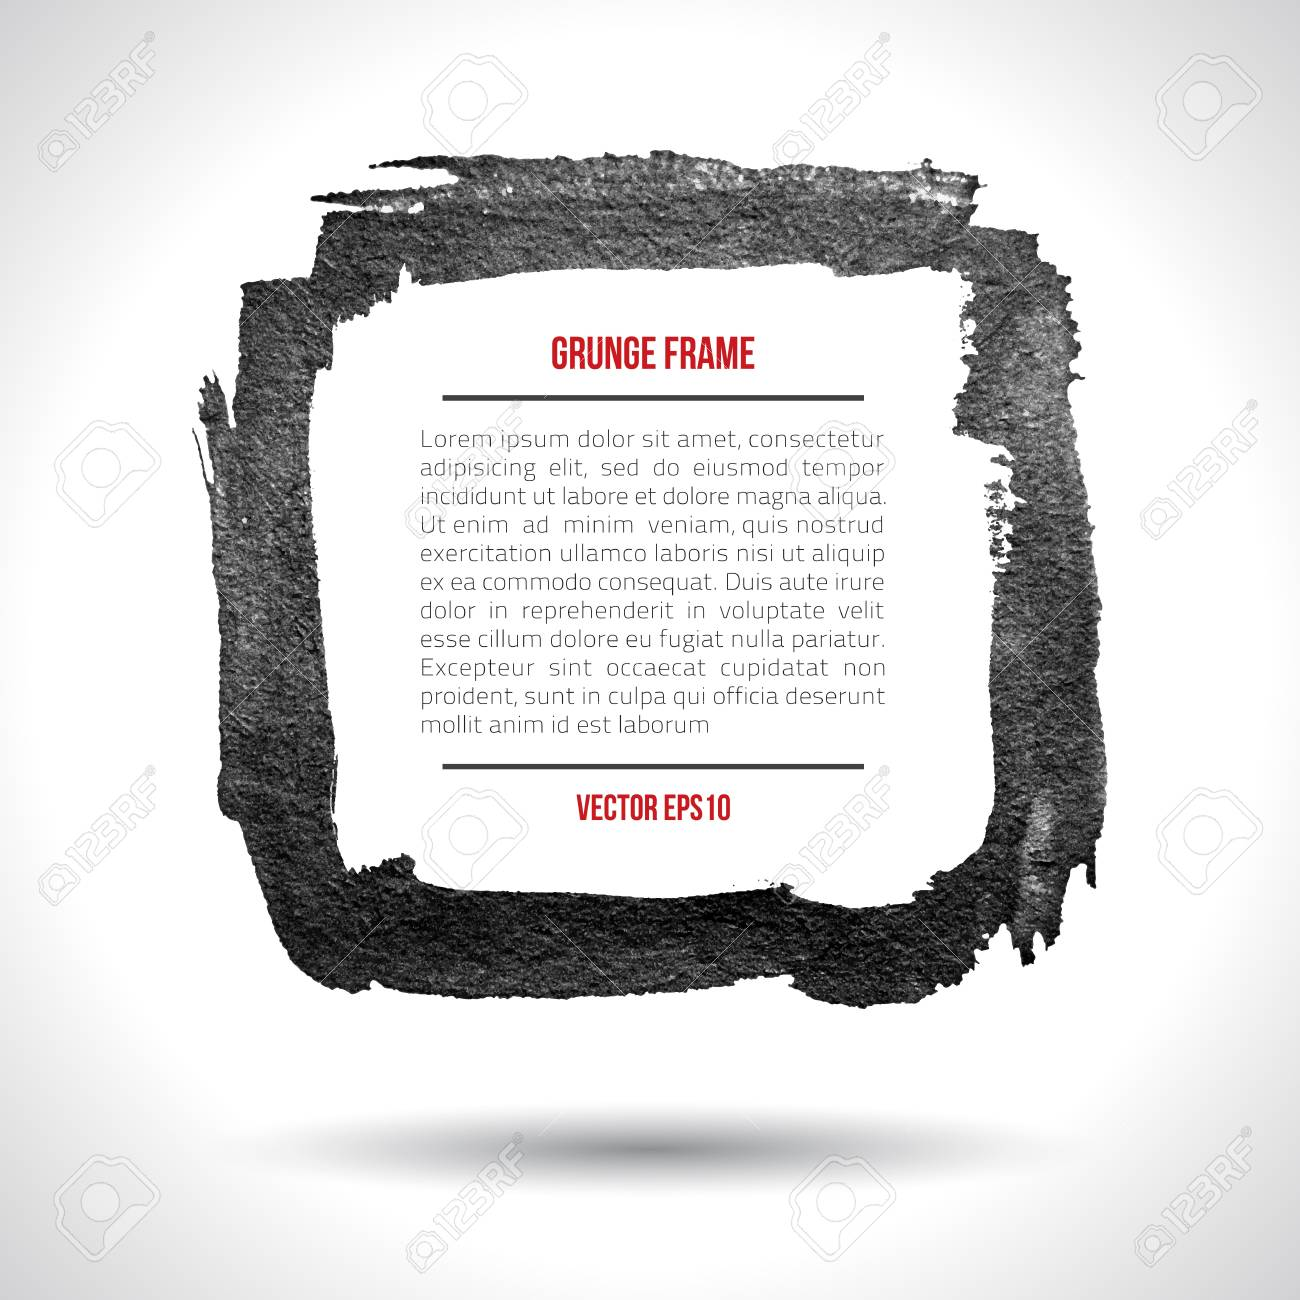 Grunge vector frame  Grunge background  Watercolor background  Retro background  Vintage background  Business background  Abstract background  Hand drawn  Texture background  Abstract shape Stock Vector - 16809741